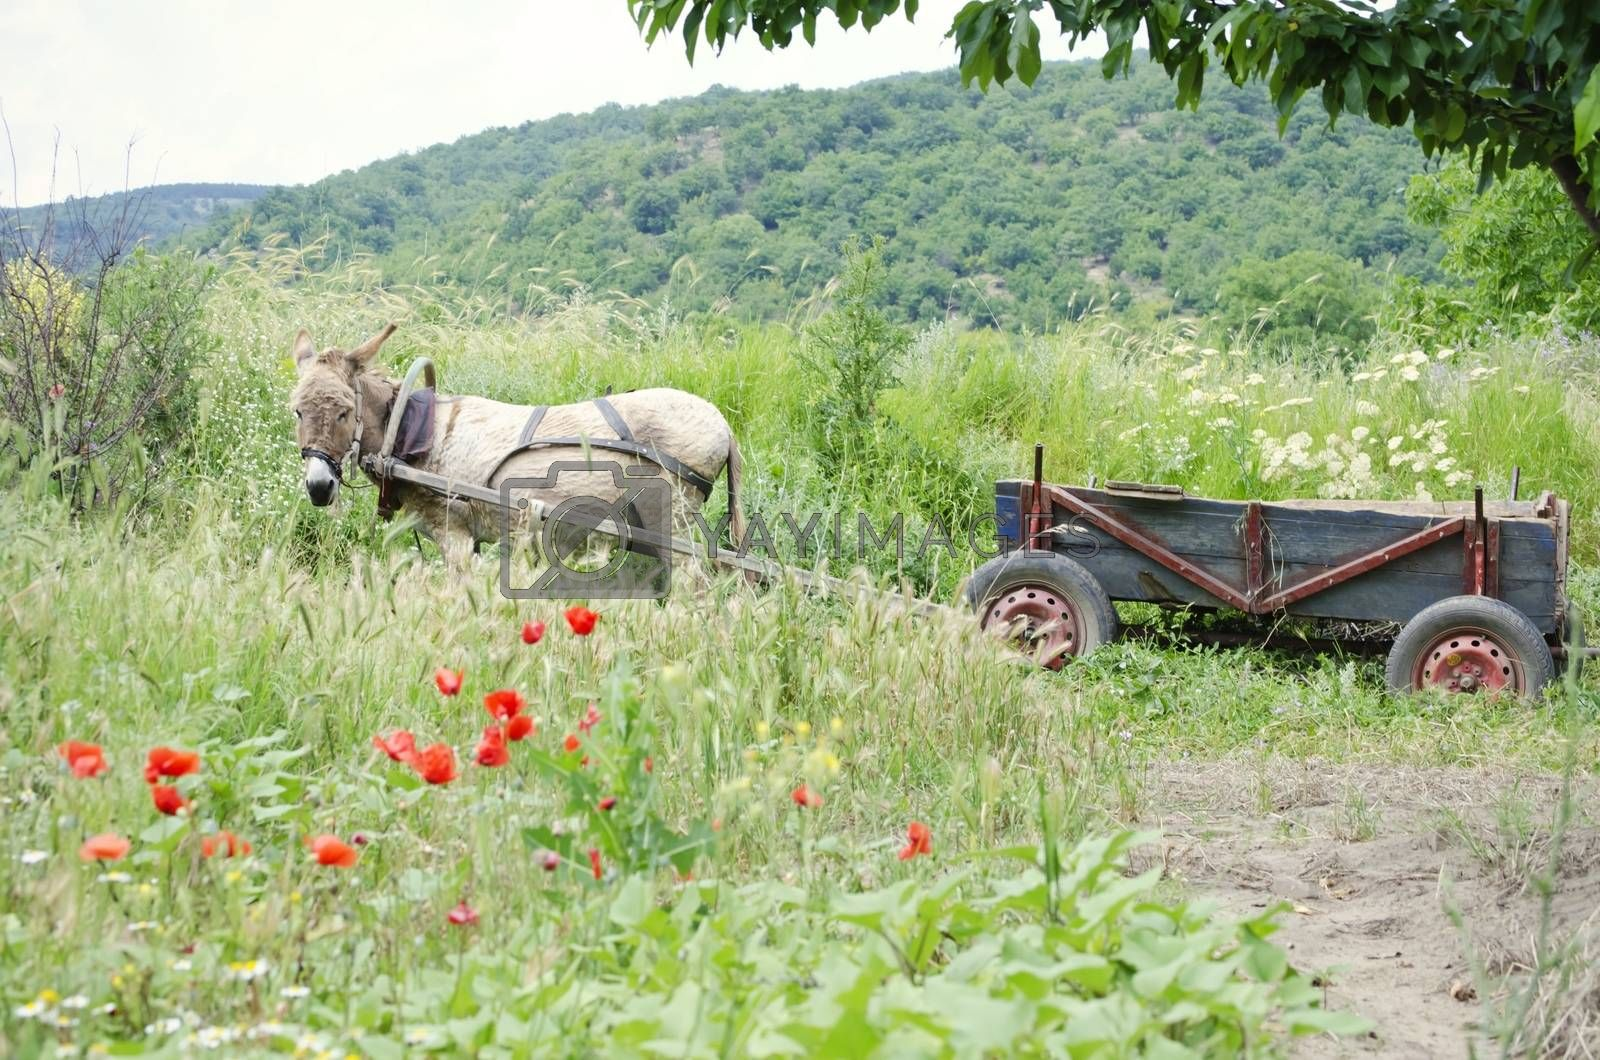 Donkey with Wooden Dray Over Natural Landscape